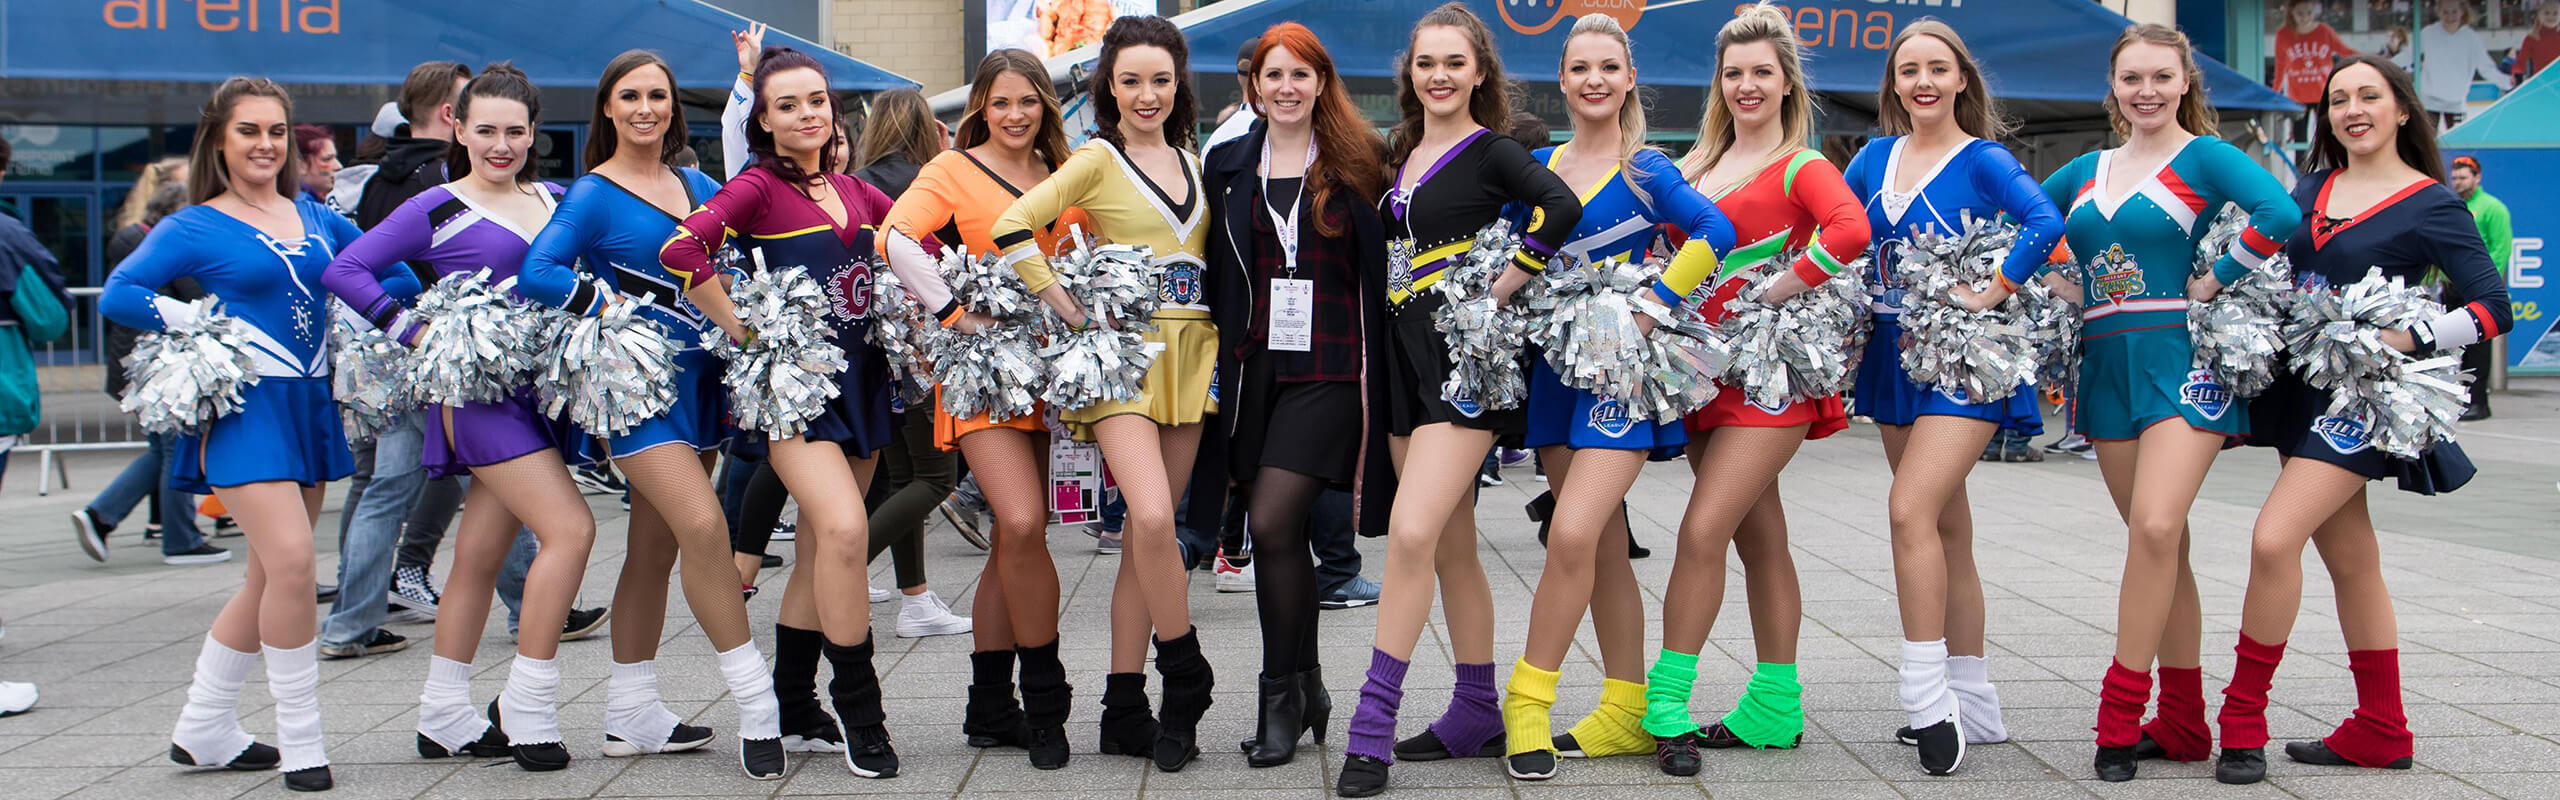 Abbi Burns with her cheerleaders outside the Motorpoint Arena